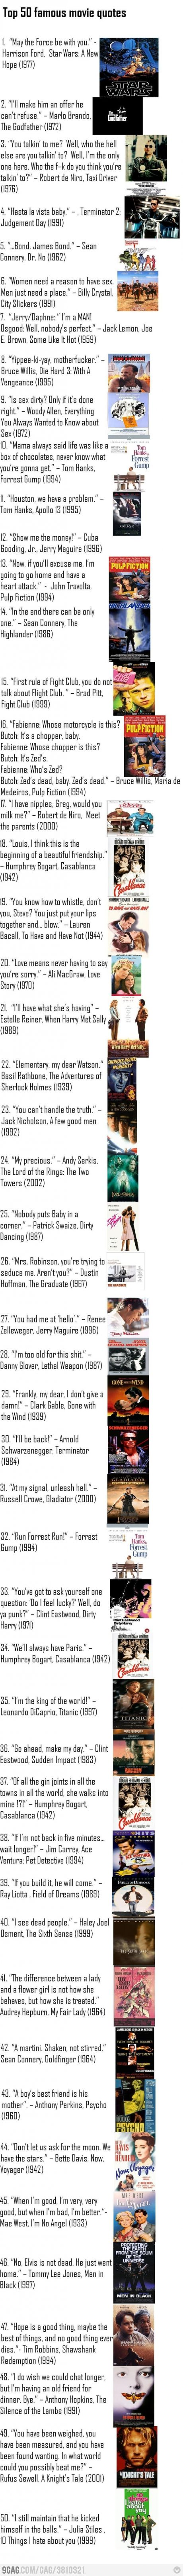 Top 50 Movie Quotes. I don't agree with all of them but they do have a lot of them